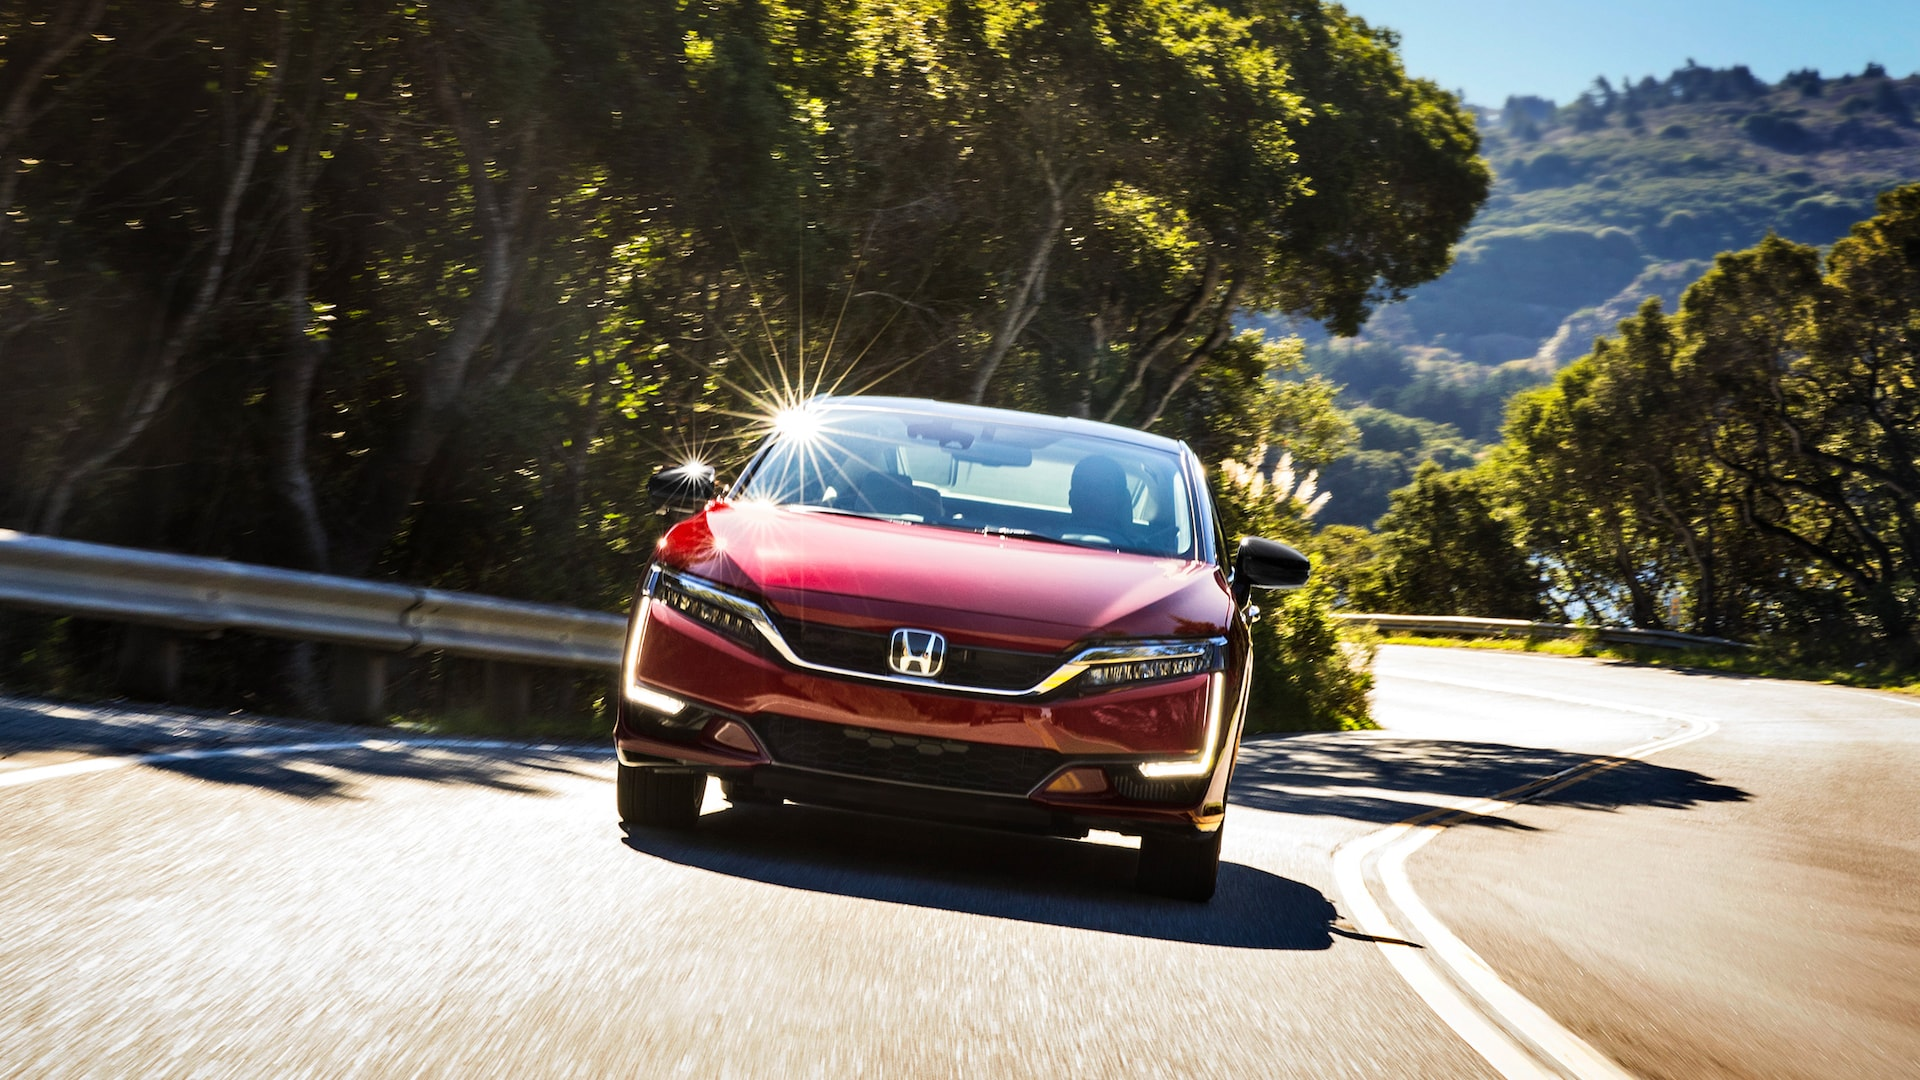 Front view of 2021 Honda Clarity Fuel Cell in Crimson Pearl driving on winding road.